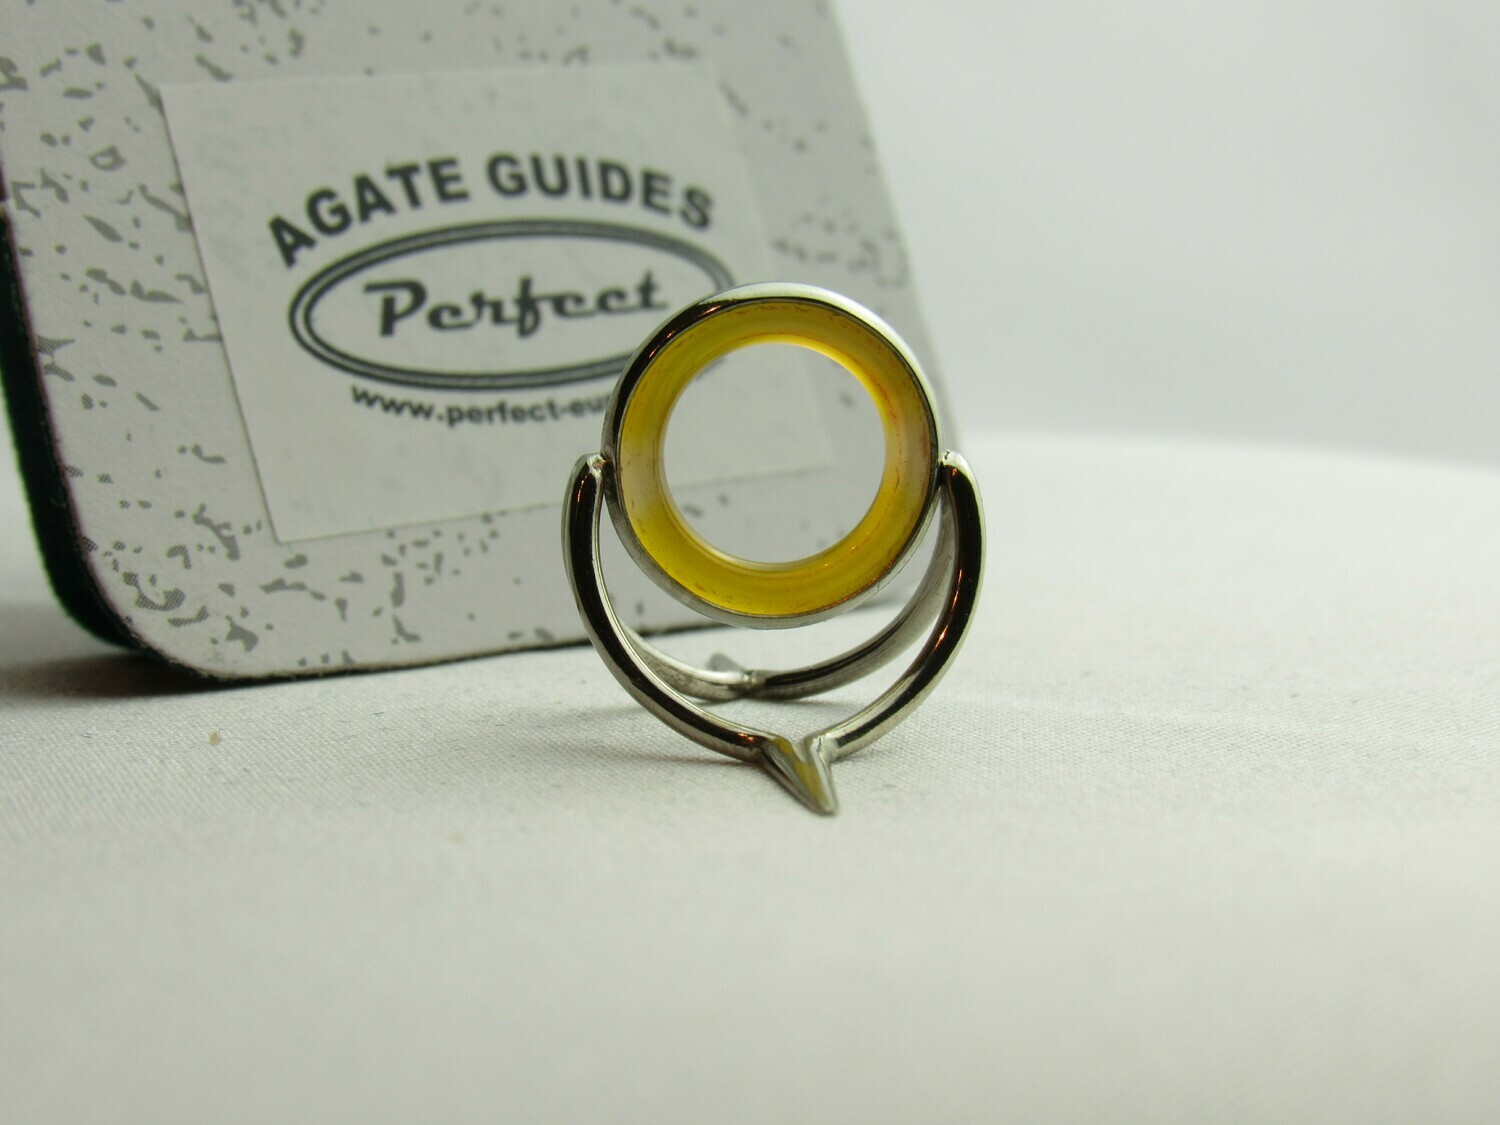 Agate Perfect Stripping Guide Ring 12mm orange clear